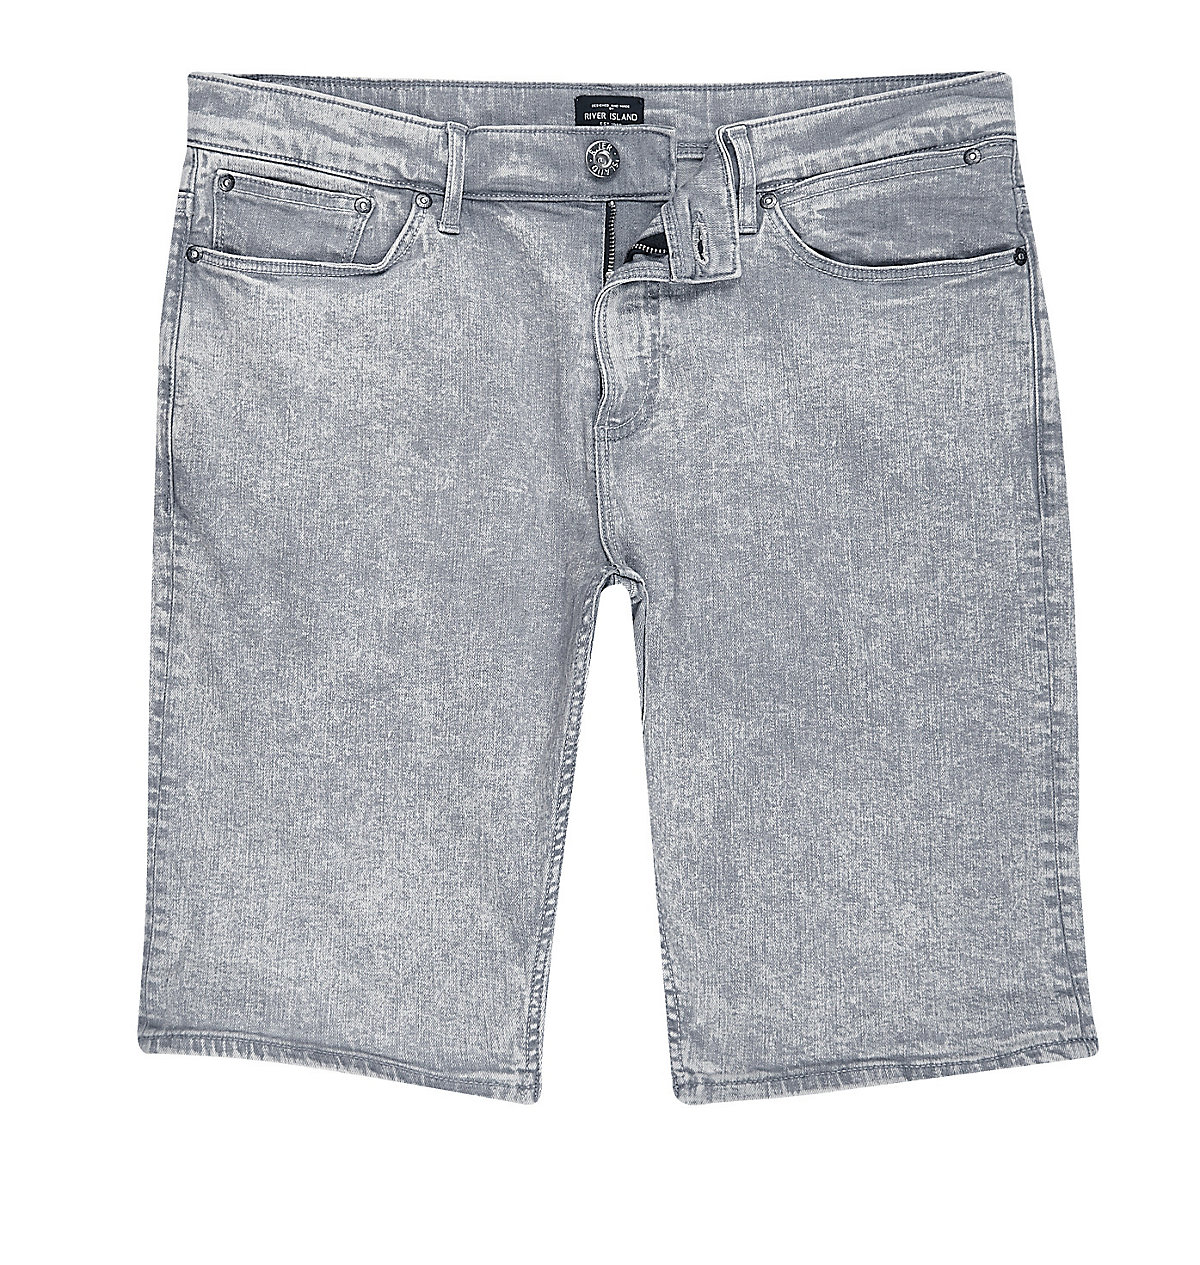 Grey acid wash skinny fit shorts